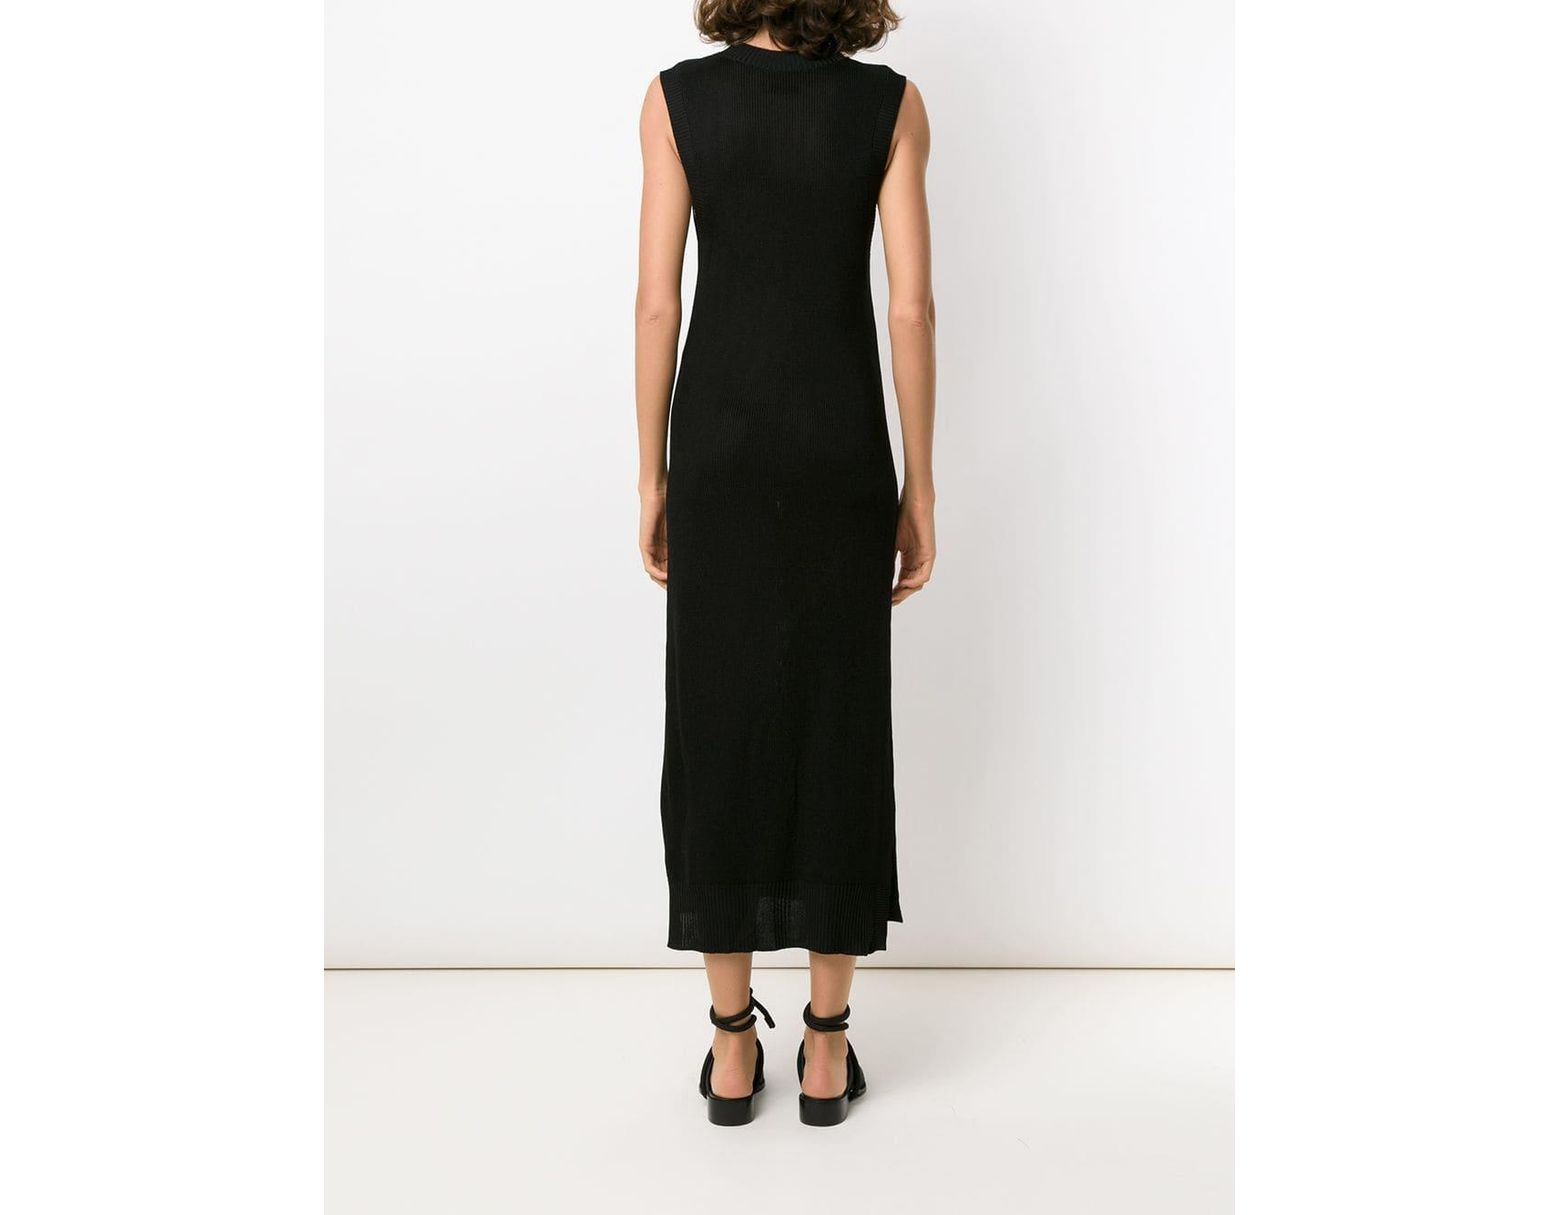 Textured Black Dress Save Osklen Midi In 38Lyst vmNn08wO